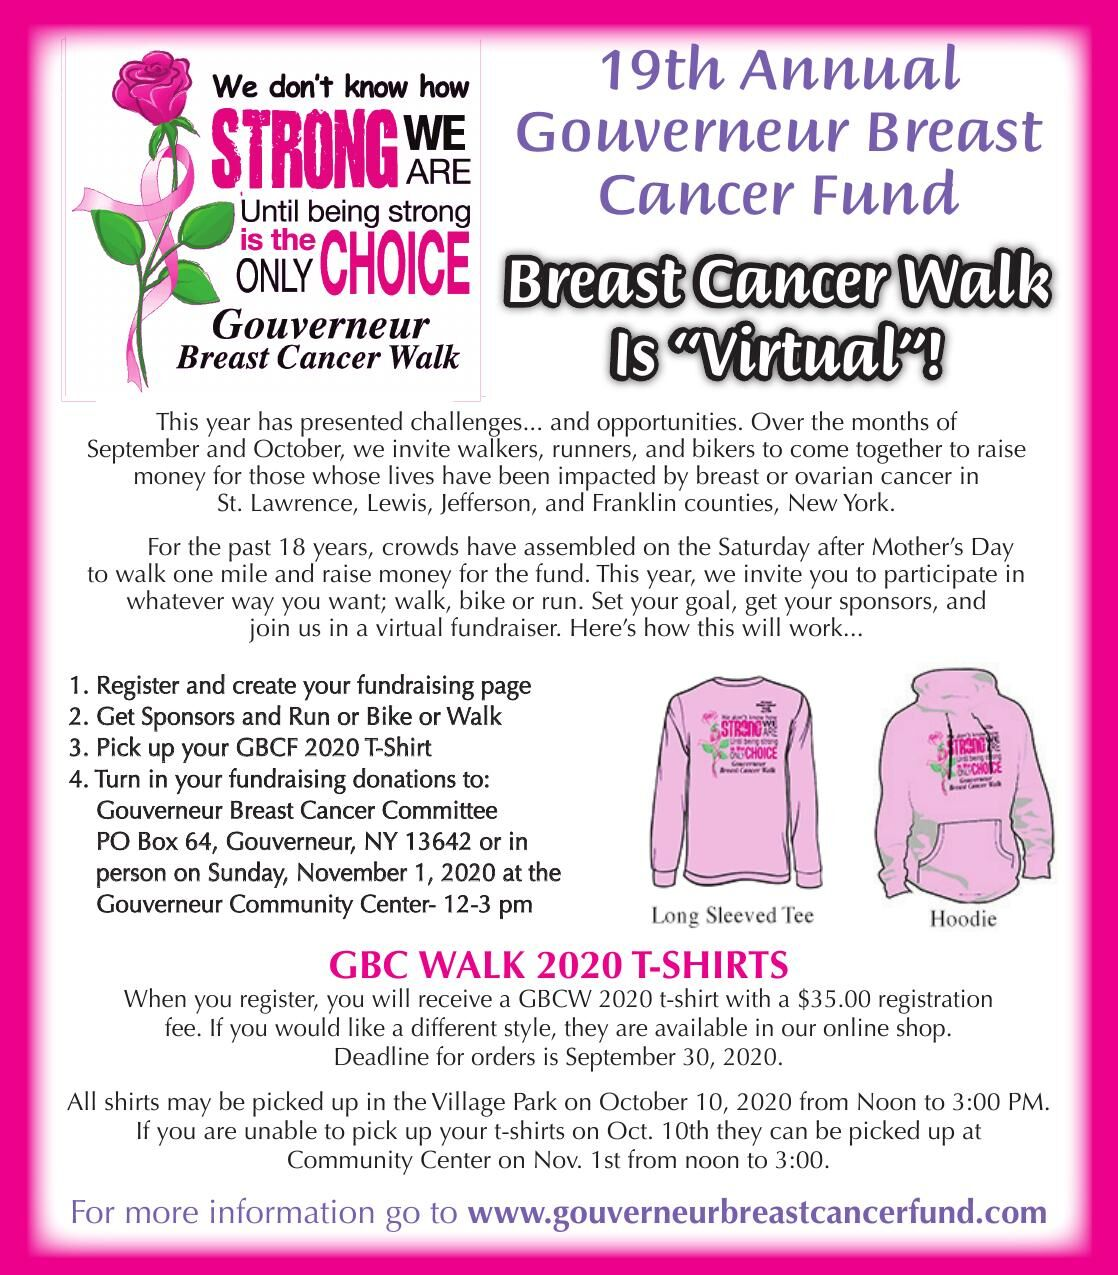 Gouverneur Breast Cancer Fund